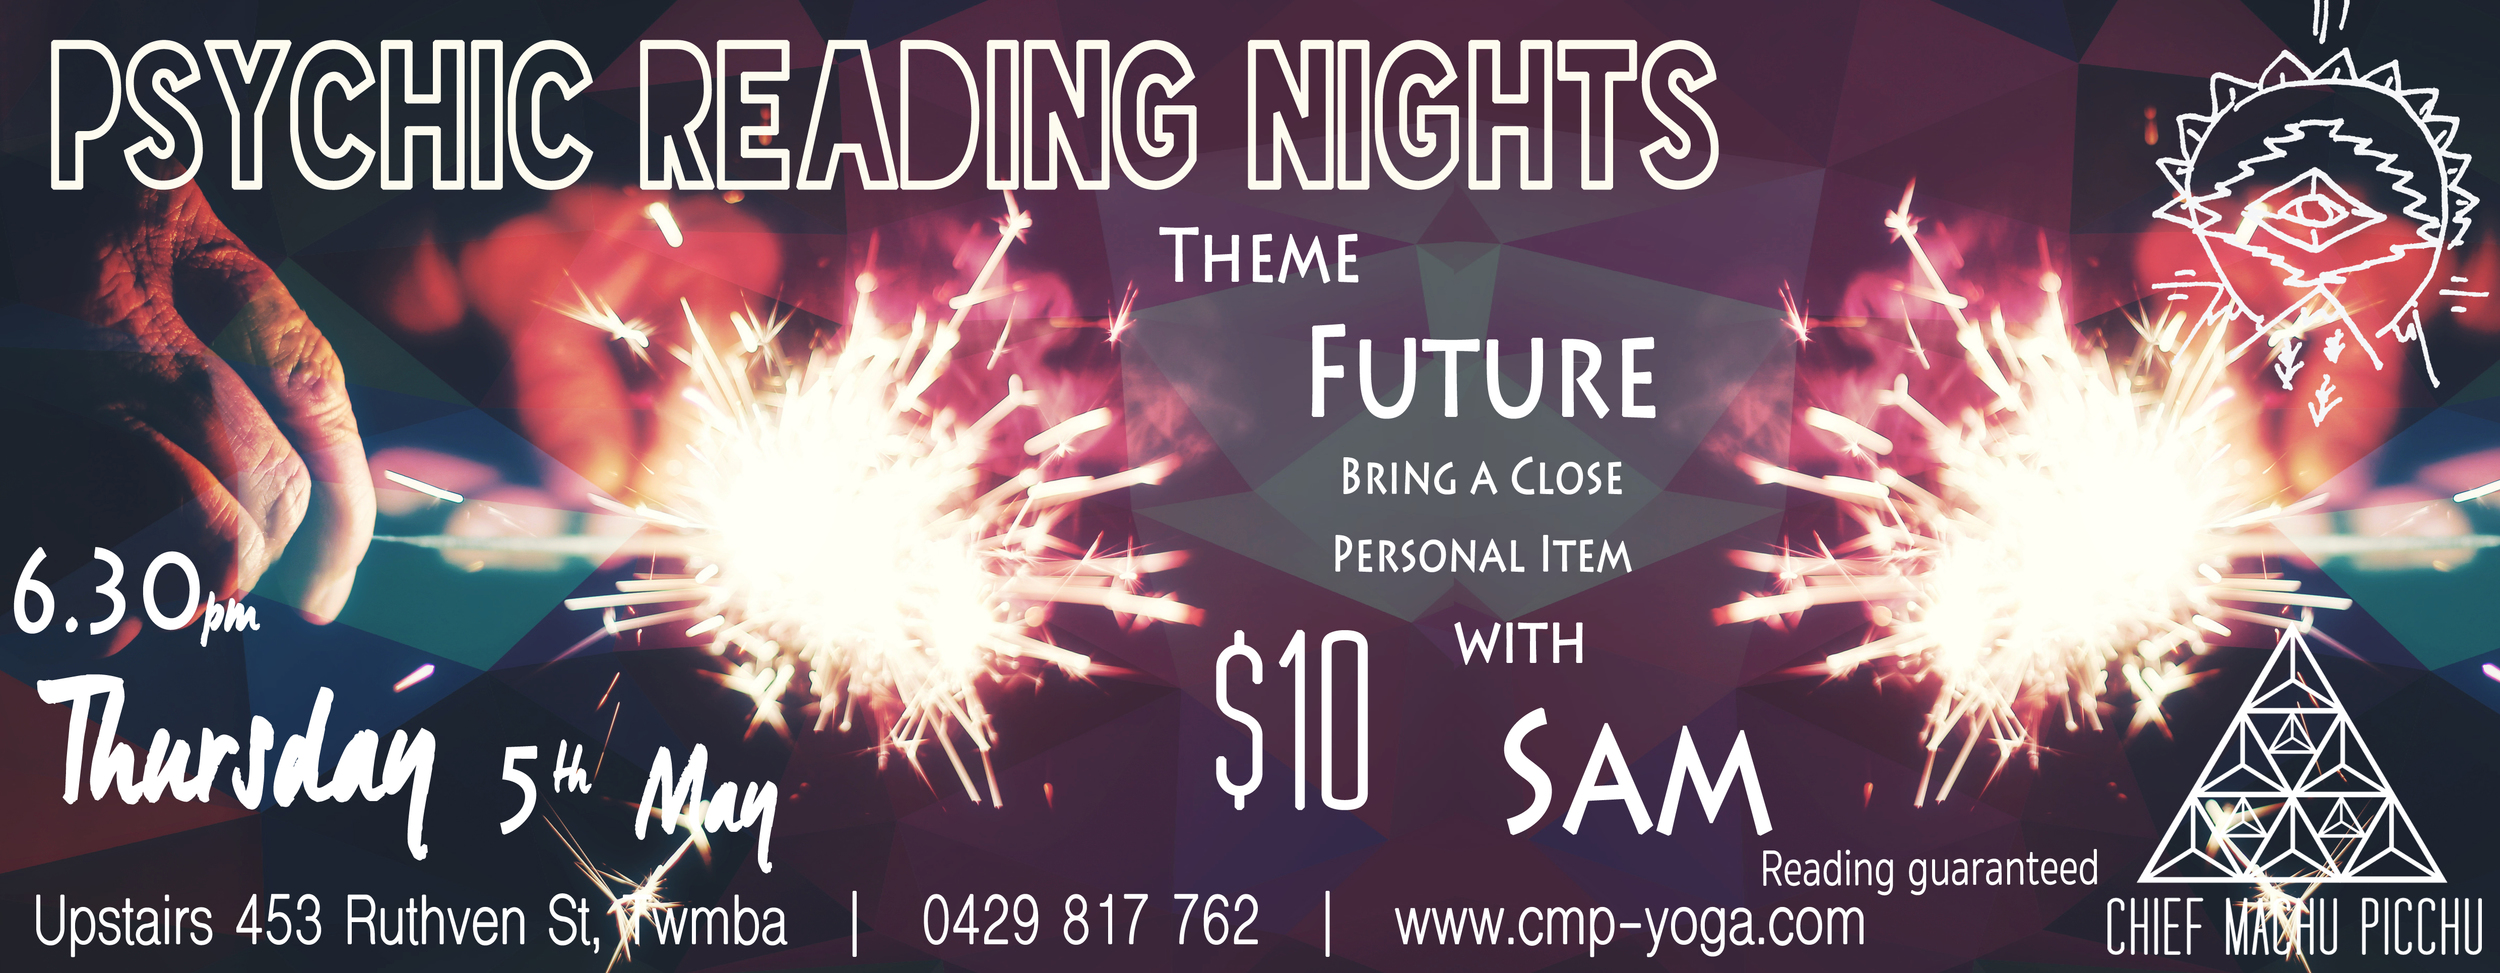 Sam will be conducting our Psychic Readings this Thursday at 6.30pm, $10 Entry with Reading Guaranteed 🌟 Looking into the FUTURE!